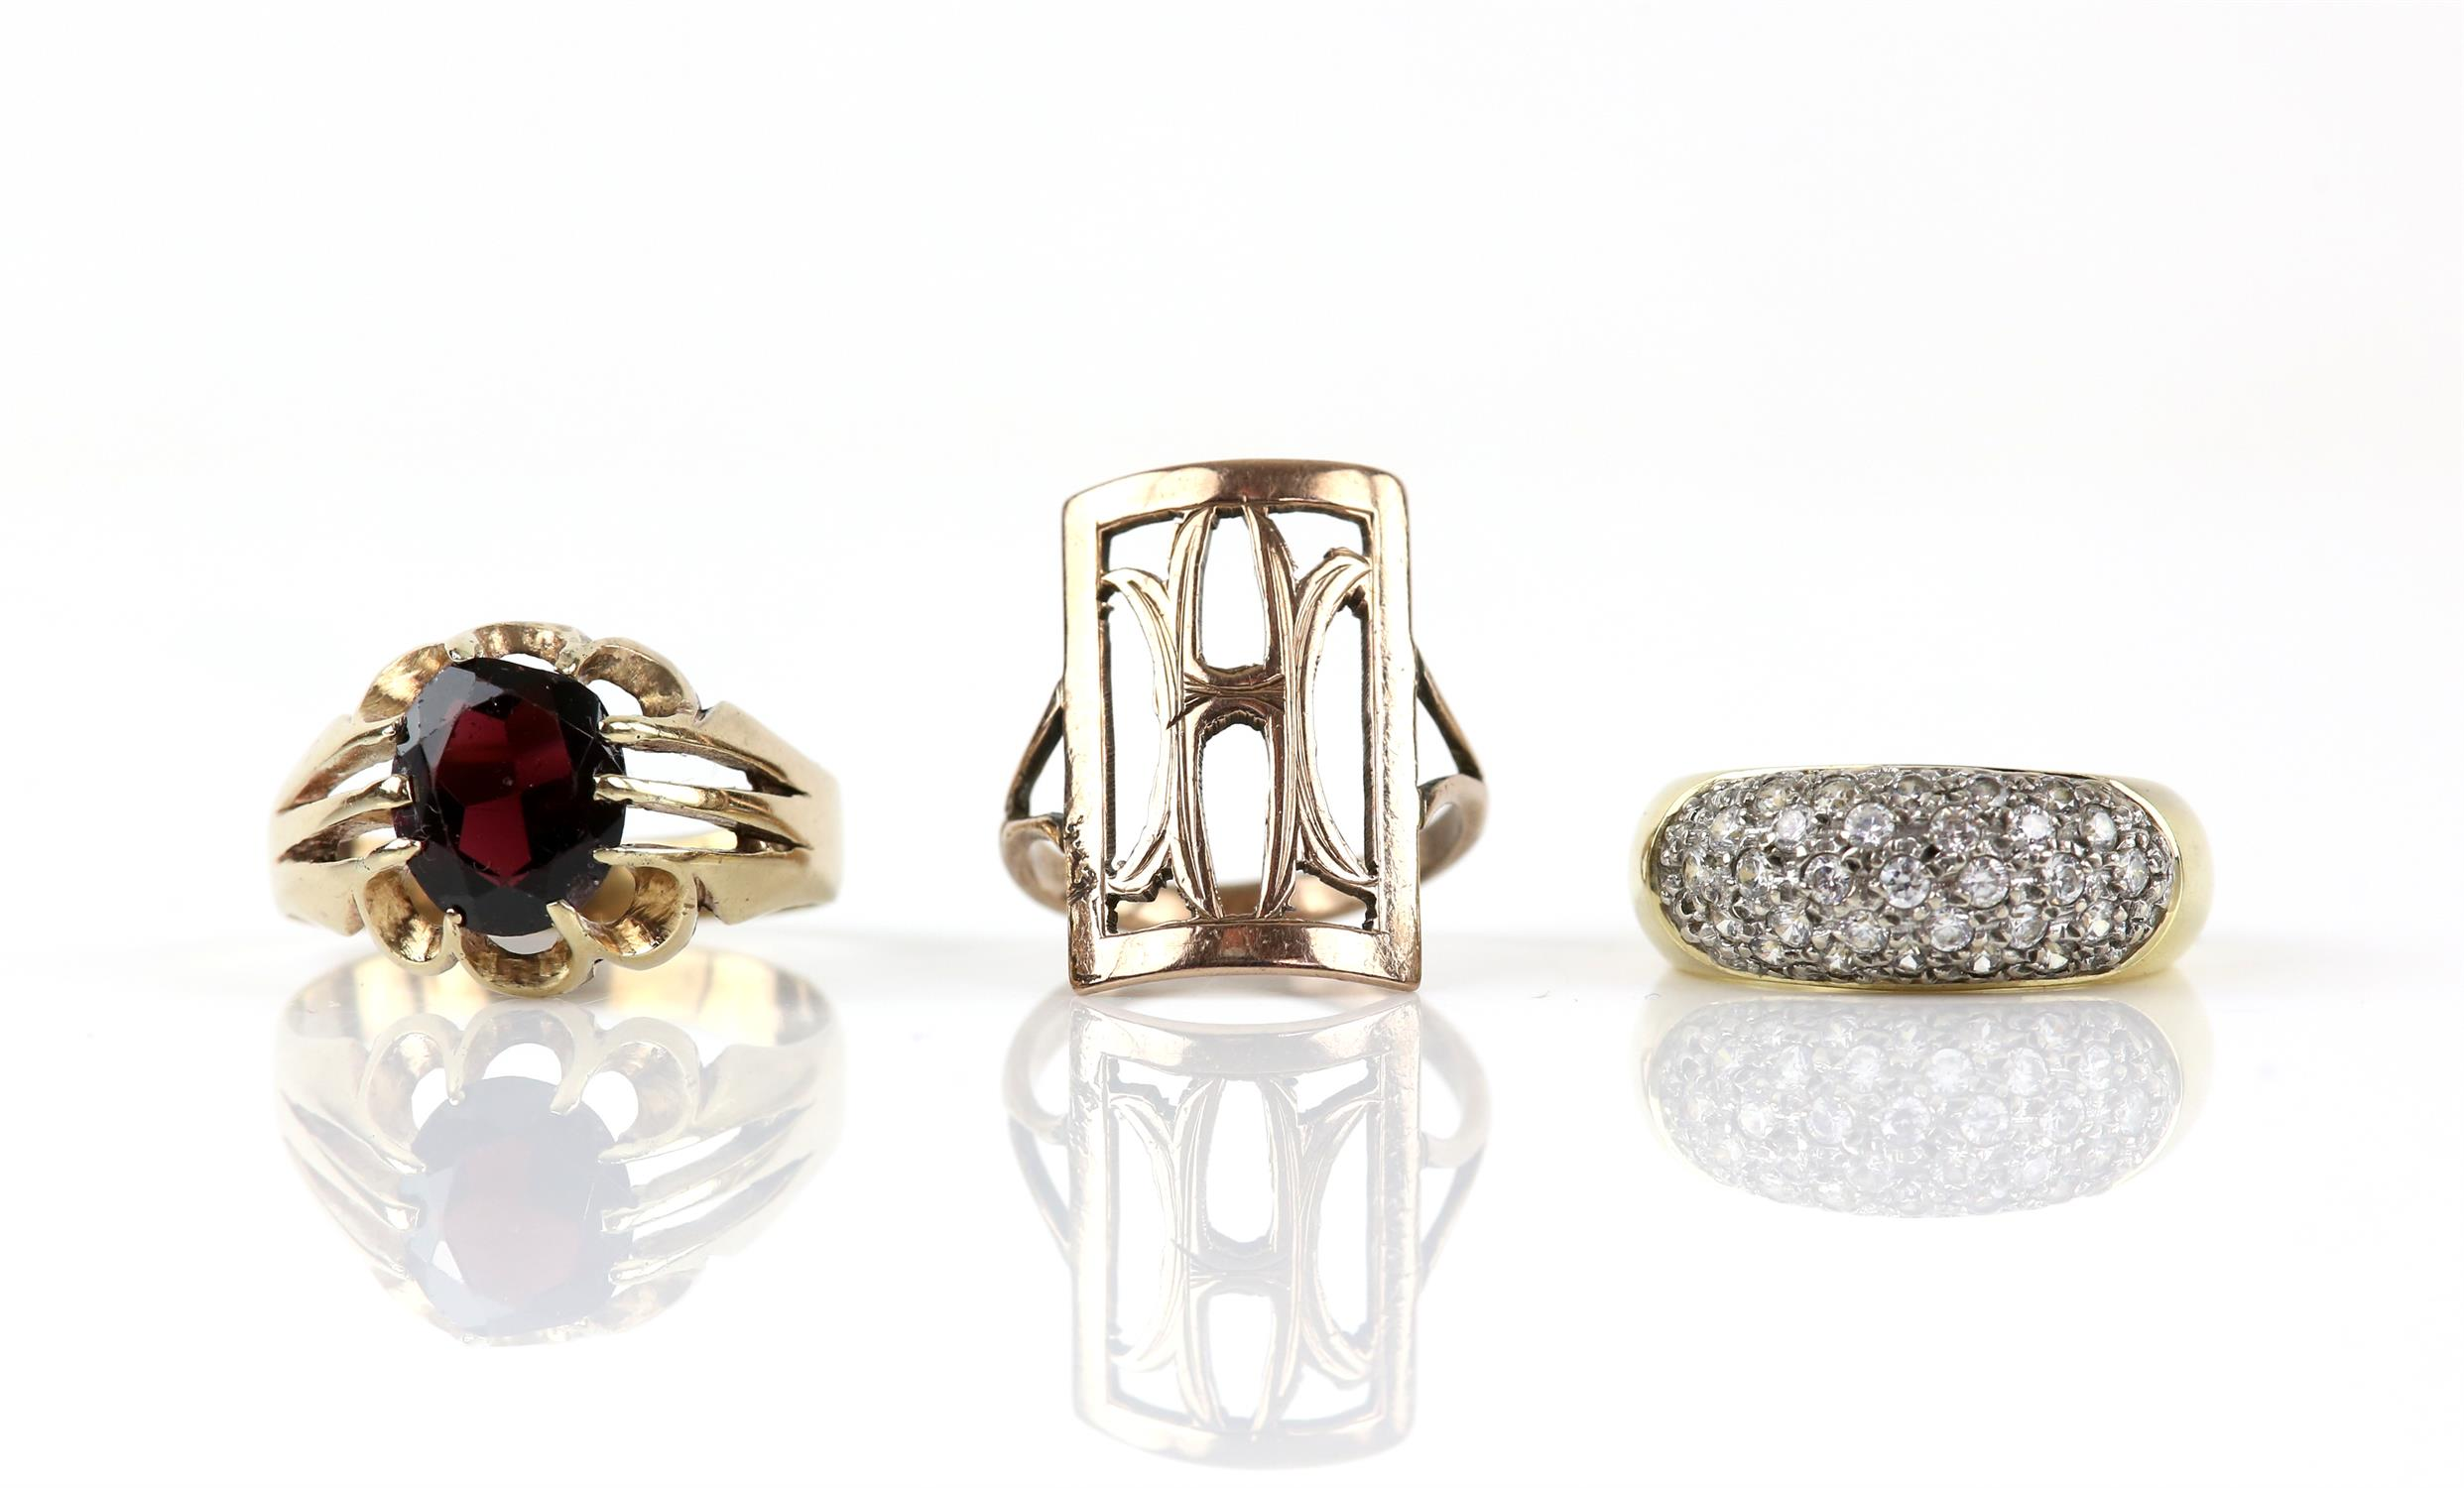 Three rings, including a single stone garnet ring, in 9 ct, ring size W, a multi stone cubic